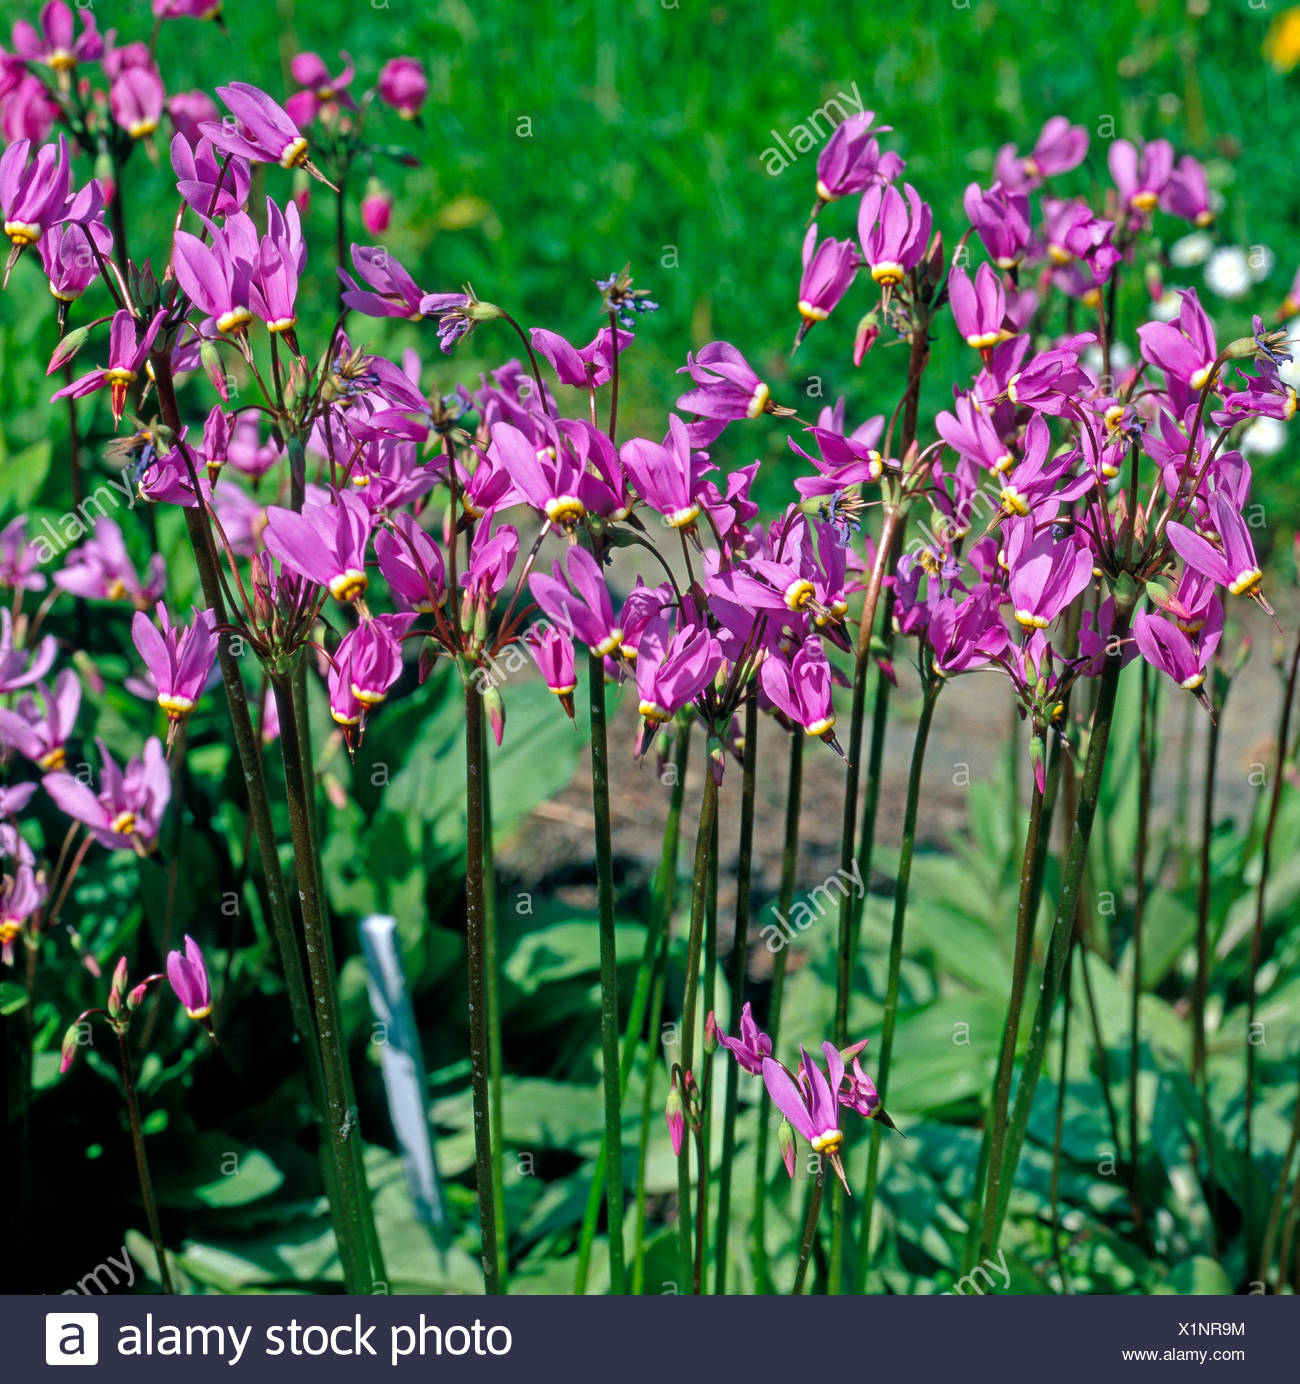 God's flowers from Nordwestamerika at garden patch - Stock Image